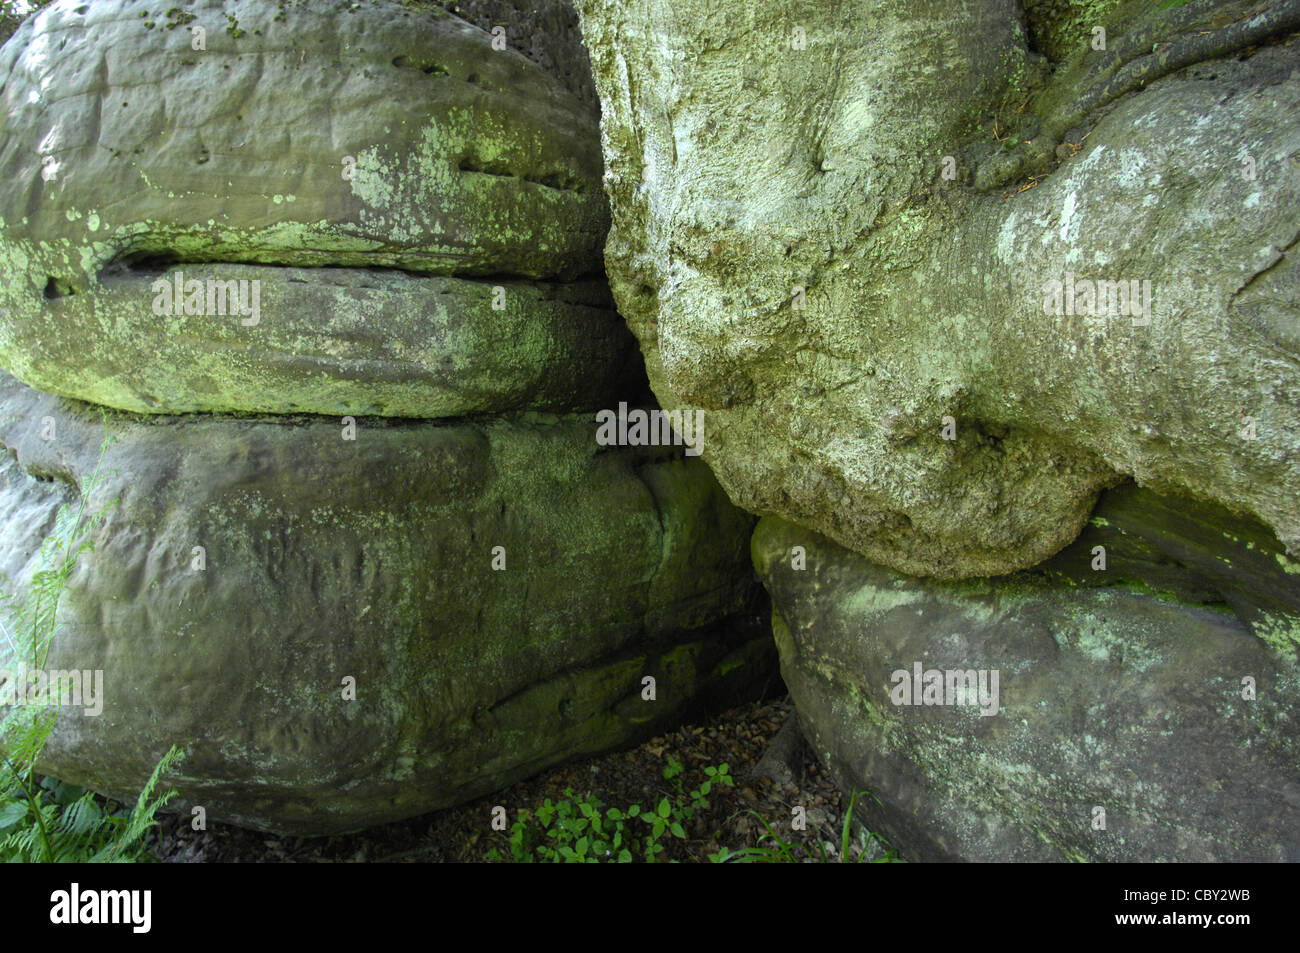 Large beech tree roots merge with sandstone rocks in Uckfield, East Sussex - Stock Image